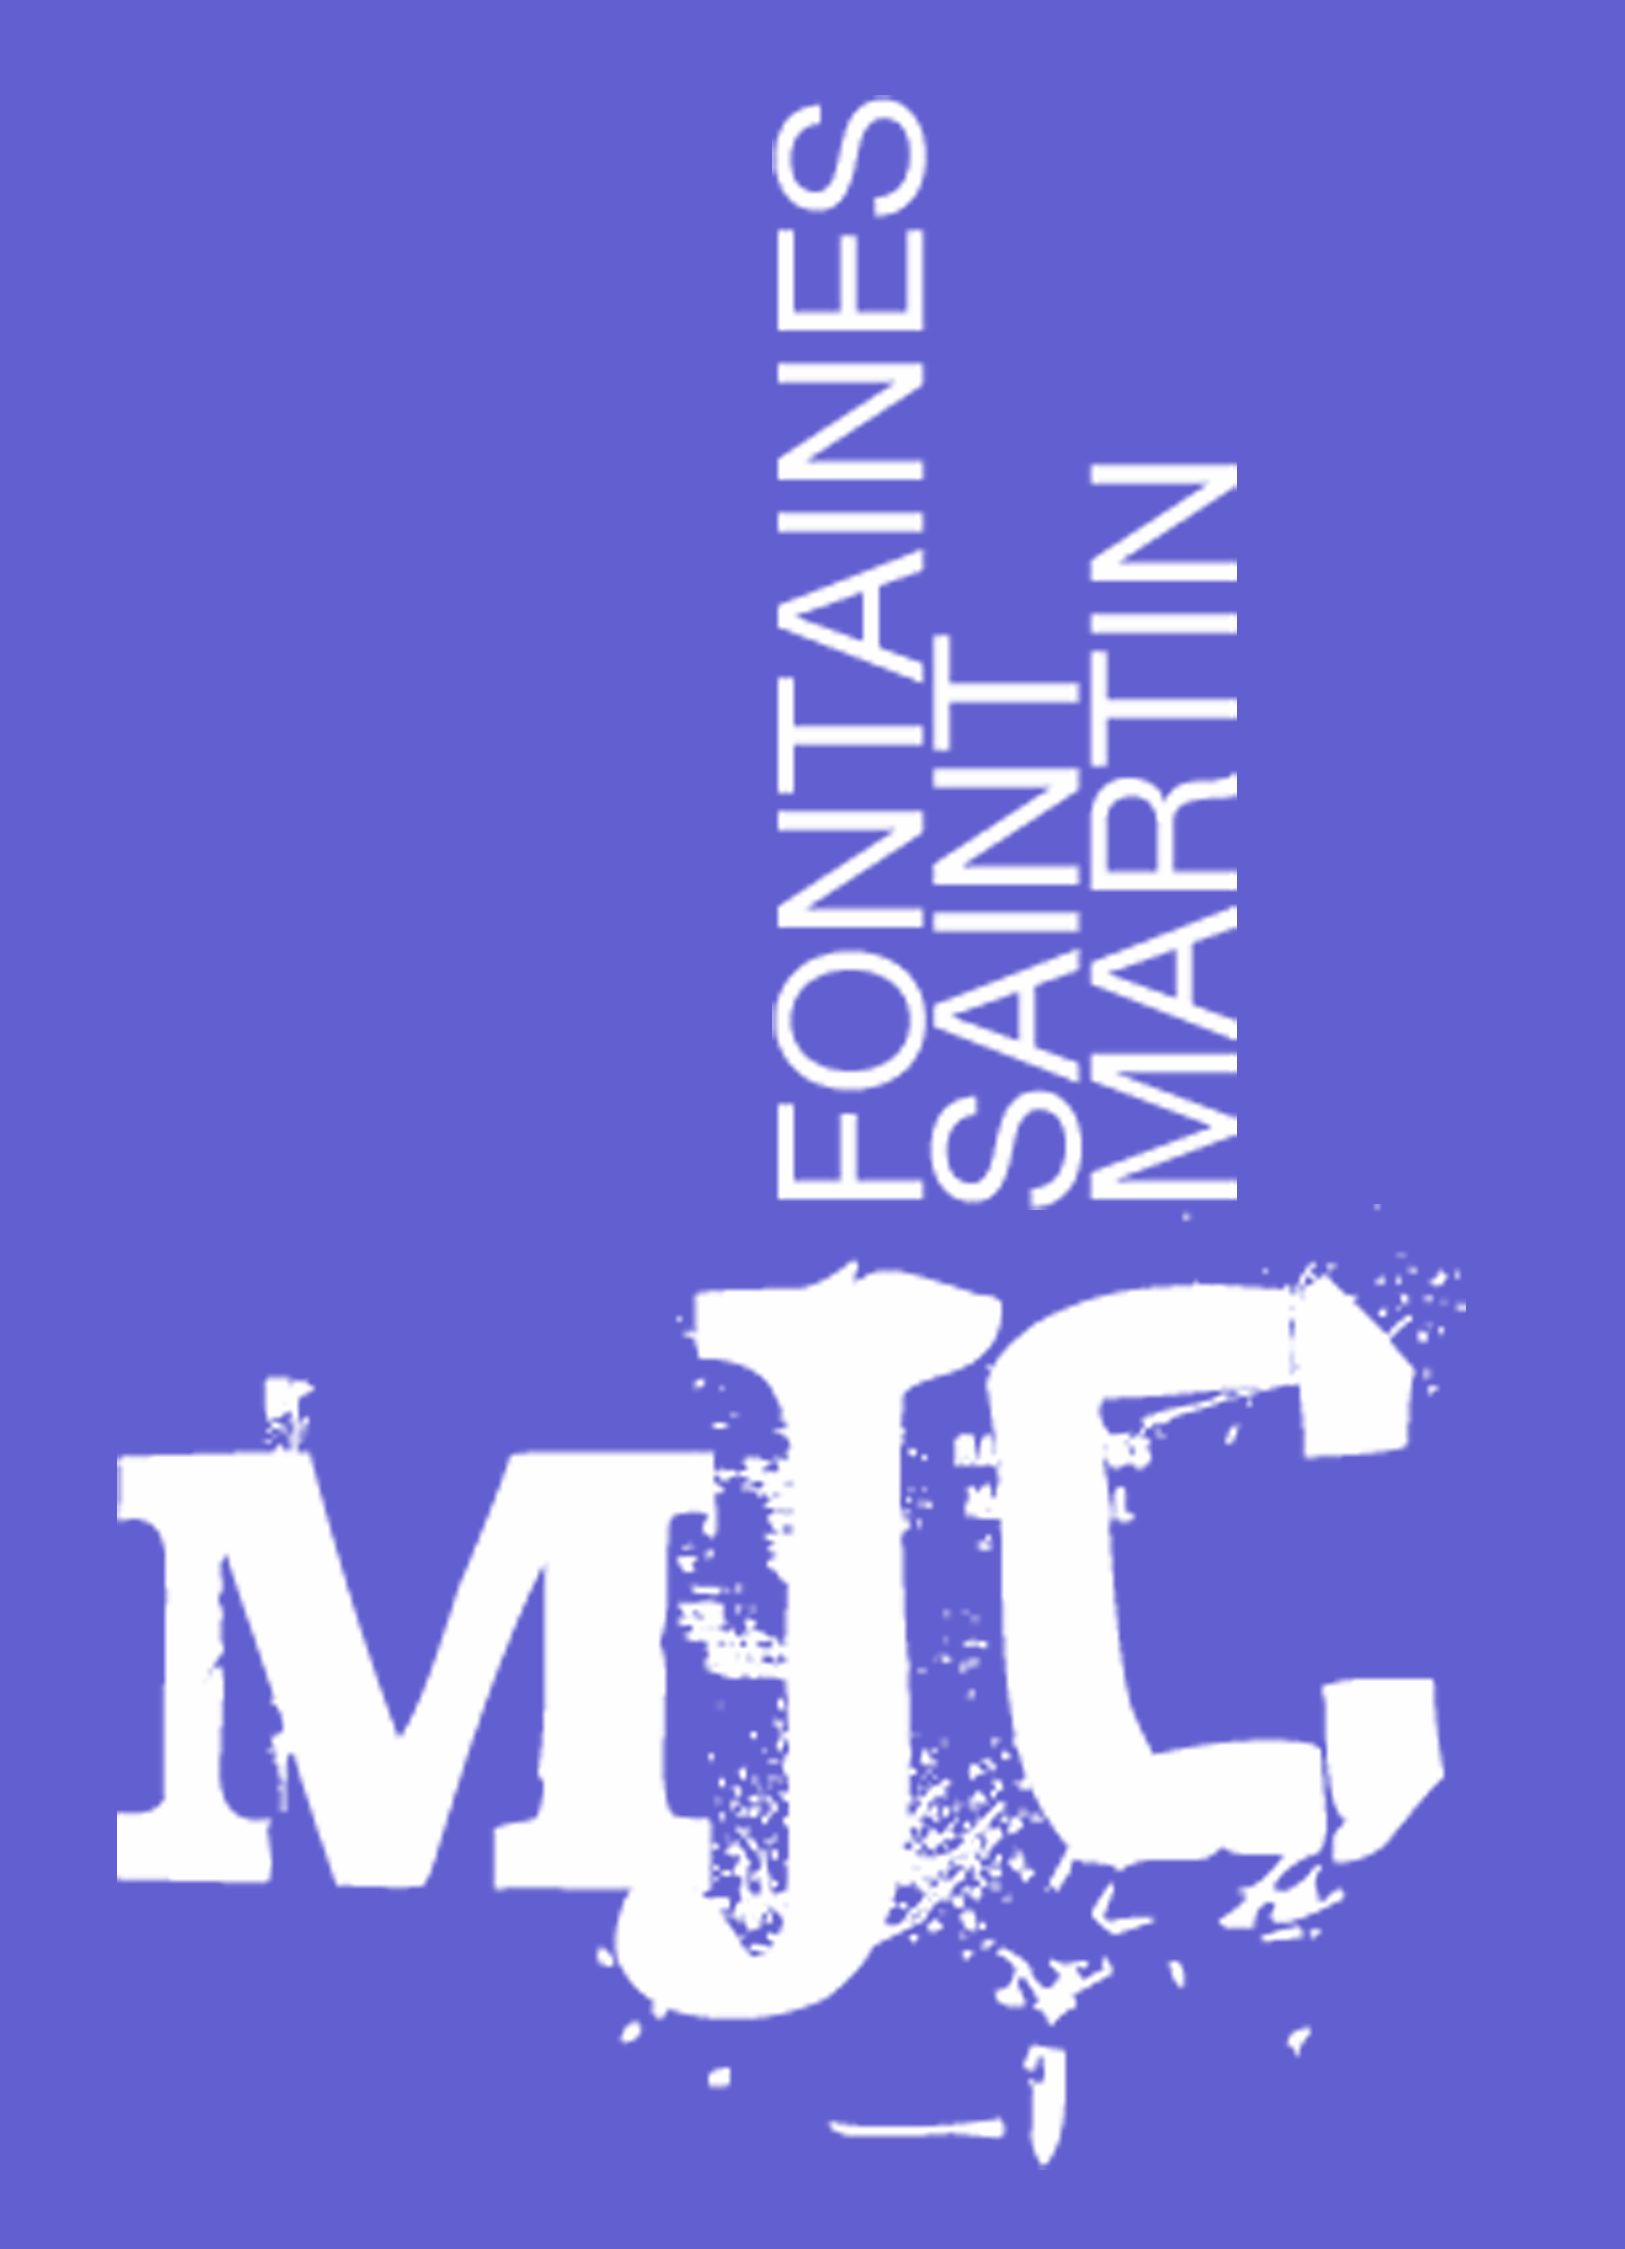 MJC Fontaines St Martin